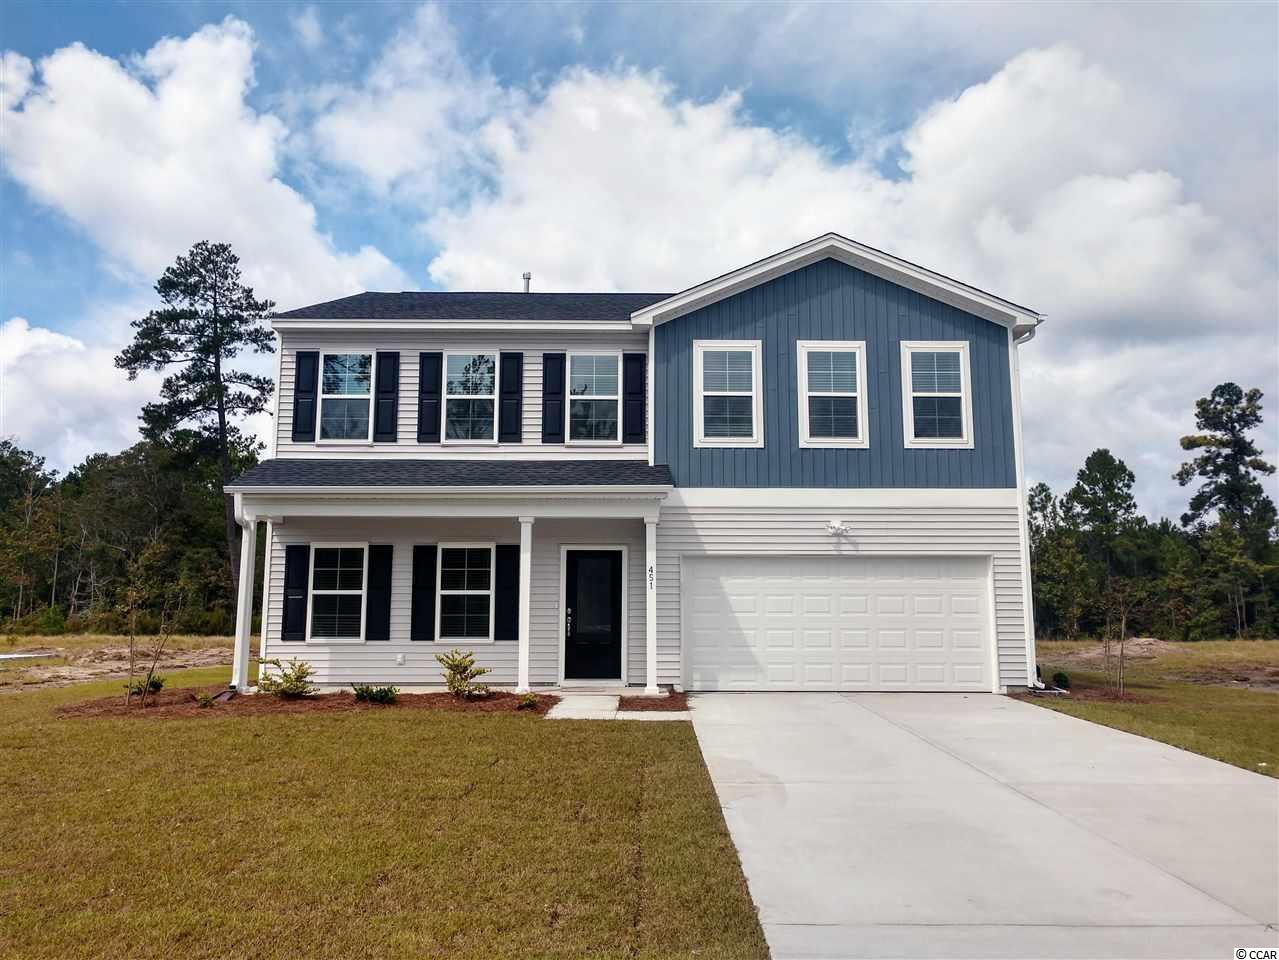 Currently selling at Coastal Point!  Just minutes to Myrtle Beach and historic downtown Conway, close to schools, shopping and the beach!   Mungo Homes at Coastal Point - a Natural Gas Community!  This McDowell plan is under contract, but we can build another one on any available lot, your buyer can choose their colors, selections, and options!  Lot premium and options will determine final price. With 2,218 Htd SF, 2-story, 4 bedrooms 2.5 baths, and flex room/office.   Not the right home? We offer 6 other home plans, from 1,665 to 3,049 Htd SF, 3-6 bedrooms, 2-4 baths.  We have the home that will meet your needs!  All homes have 2 car garages.  Included features: Advanced Framing; Natural Gas! Gas heat; Tank-less gas hot water; Recessed Ceiling lights in Kitchen; GE Appliances; Kitchen Granite countertops; Programmable Thermostats; 9' ceilings on first floor; Energy Efficient with LED bulbs, 14-SEER HVAC system, Air Barrier, and Sealing;  Architectural Roof Shingles; Vinyl siding with Lifetime Warranty.    Buy with Peace of Mind with our Nationally Recognized Customer Service Care!  We provide Customer Orientations at Pre-construction, Pre-drywall, and Pre-closing, and QBW 2-10 year Warranty. Ask about our incentives and special financing programs!